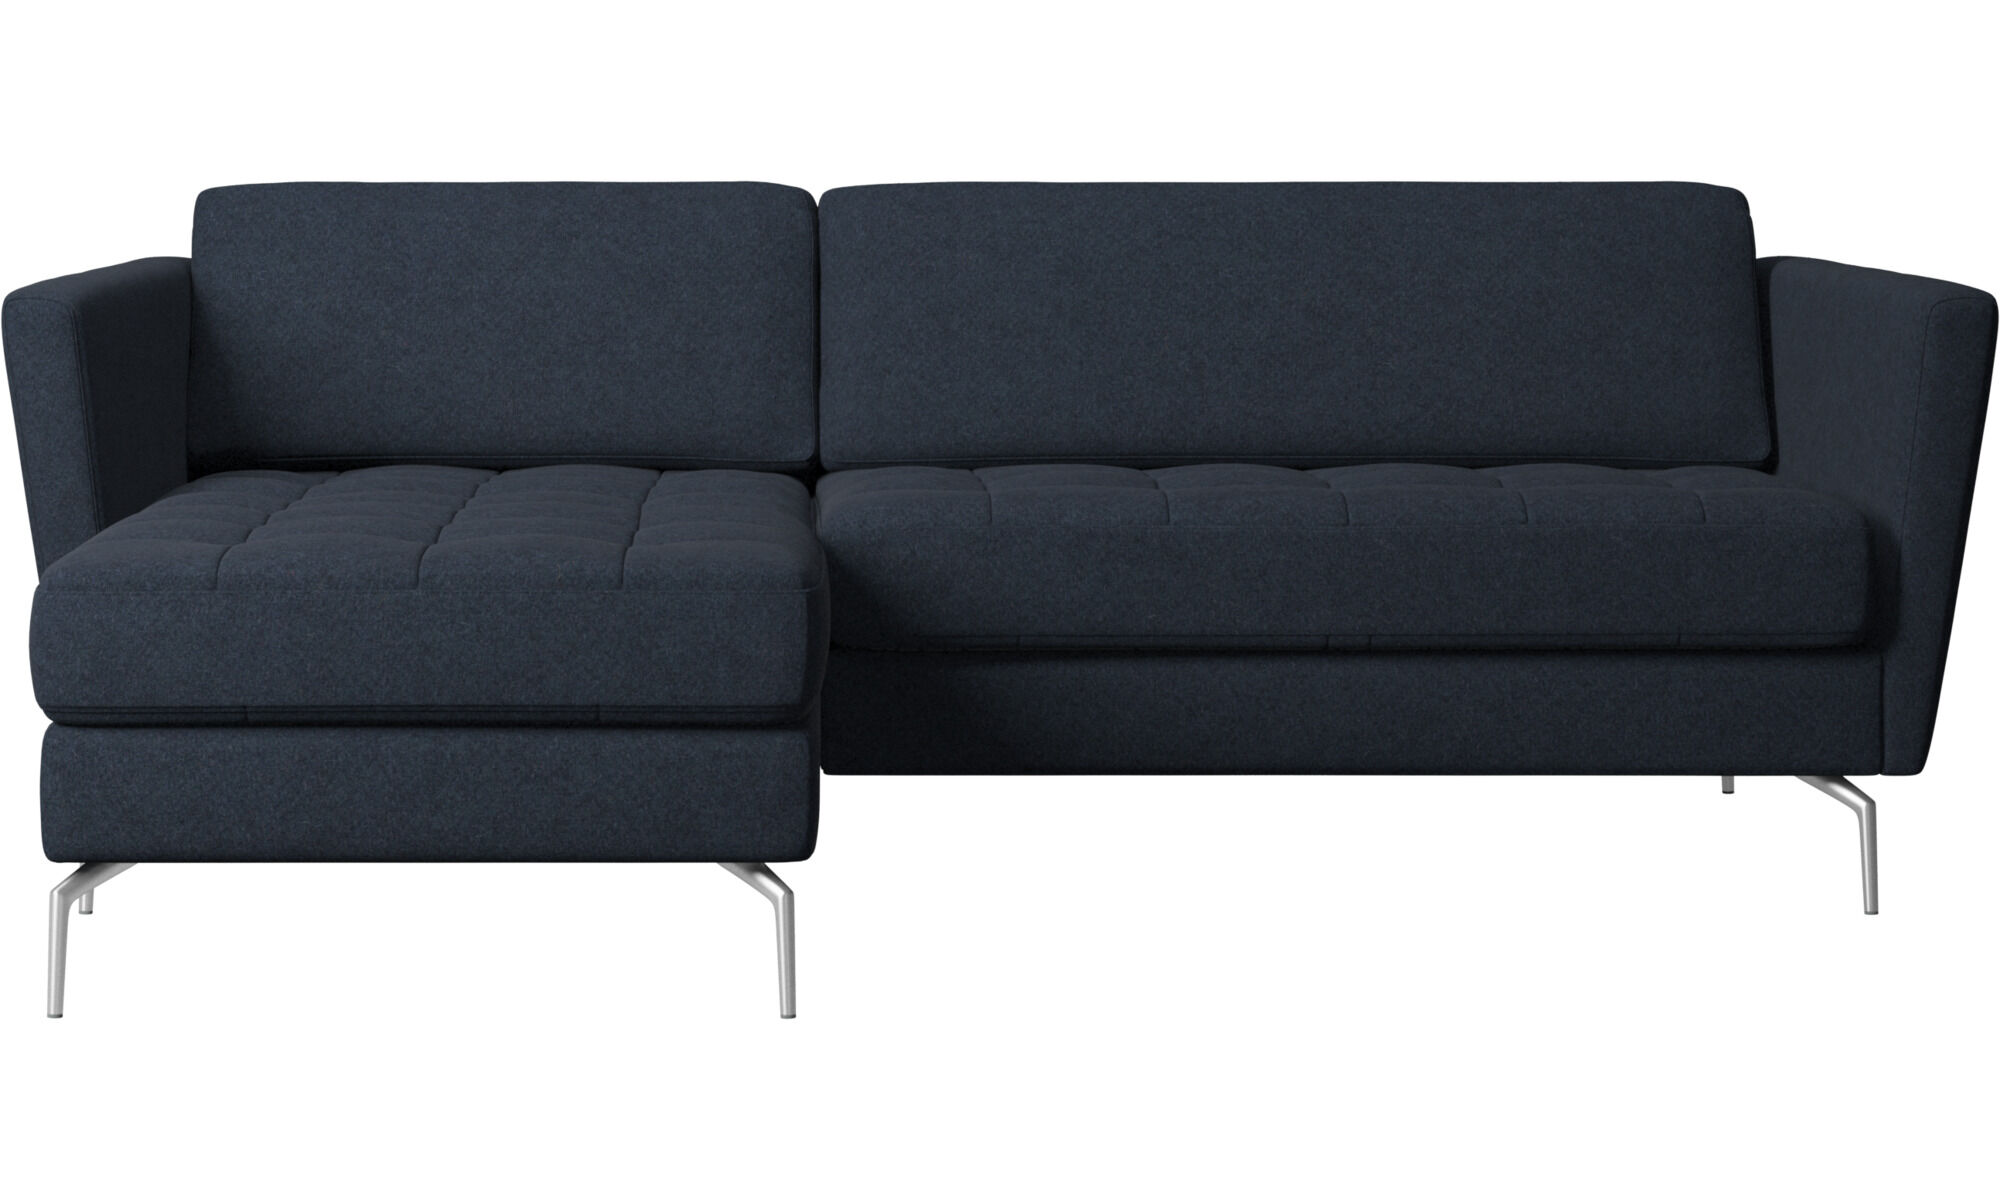 Modern chaise longue sofas   Quality from BoConcept Chaise lounge sofas   Osaka sofa with resting unit  tufted seat   Blue    Fabric